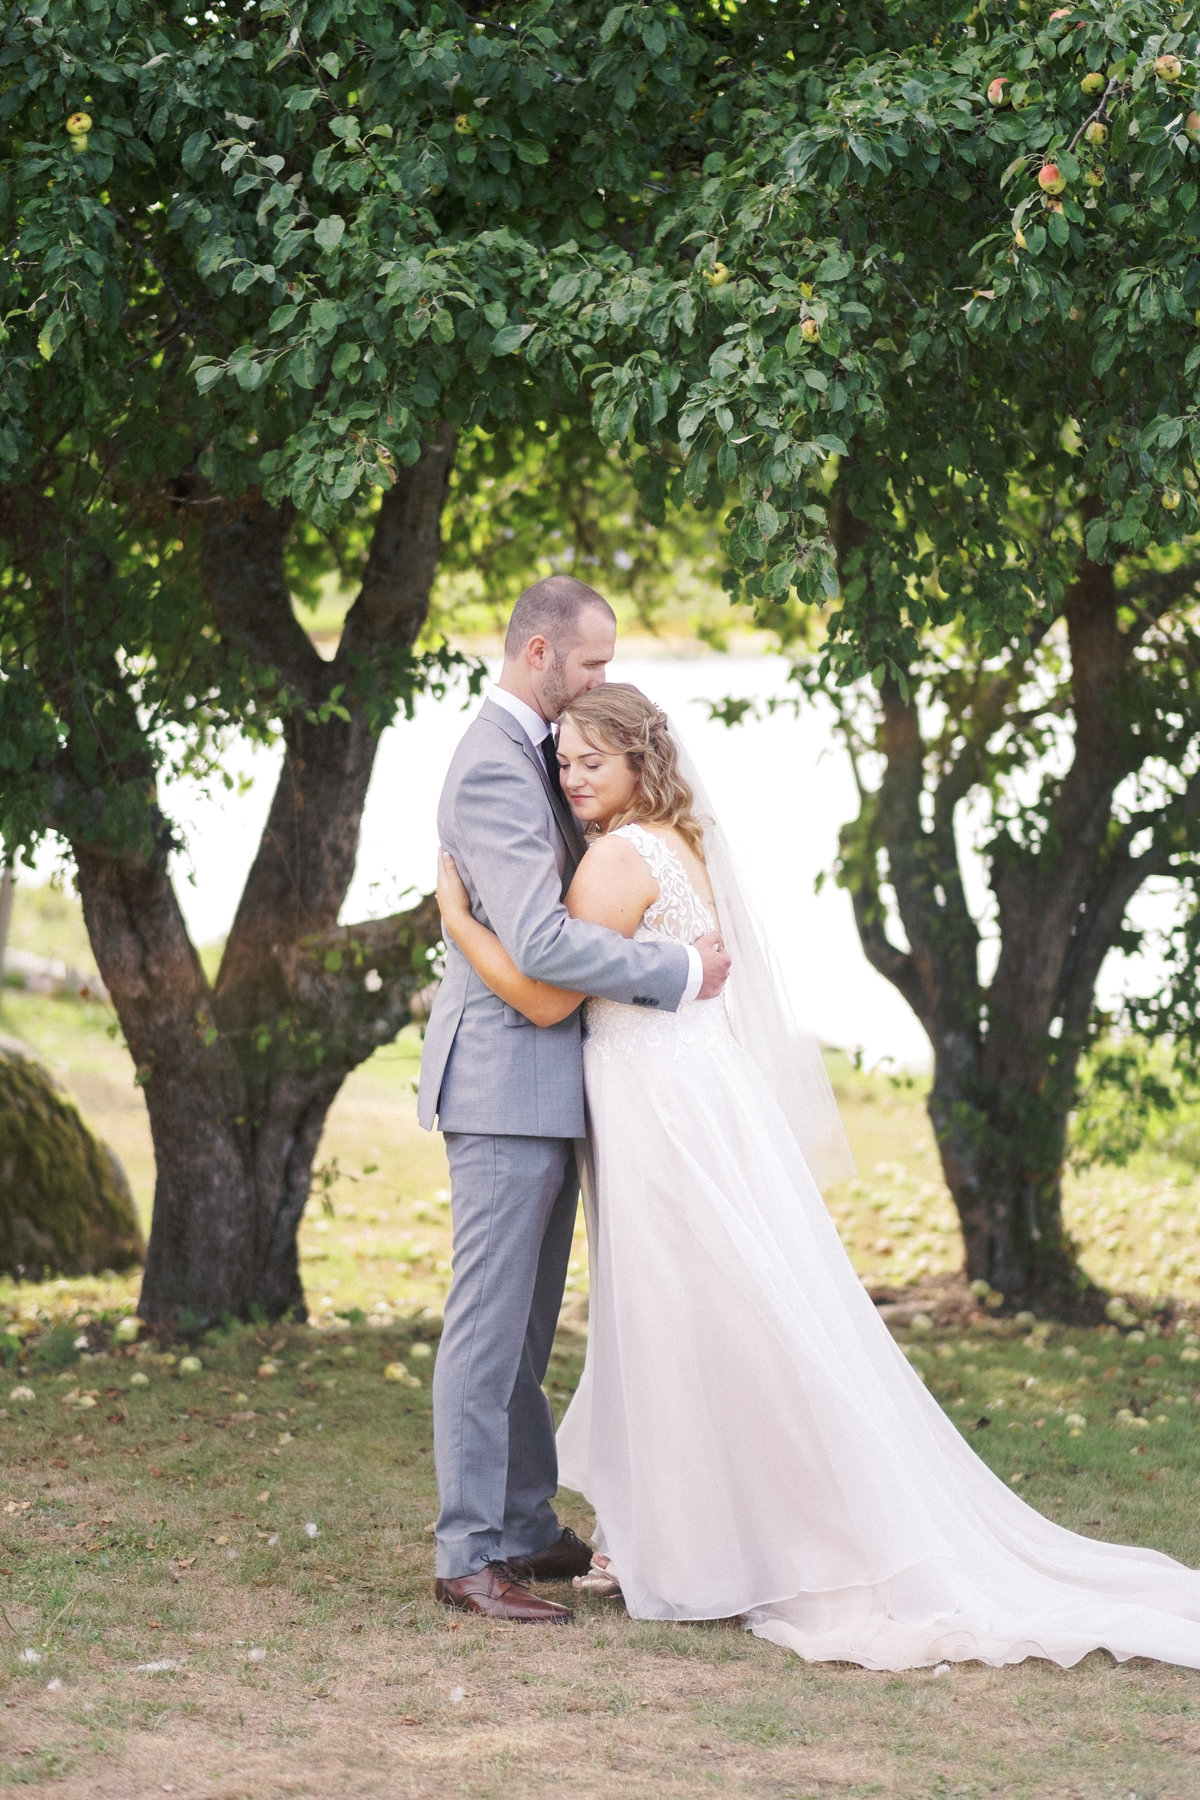 Jacqueline Anne Photography - A+A - Shining Waters Wedding-588